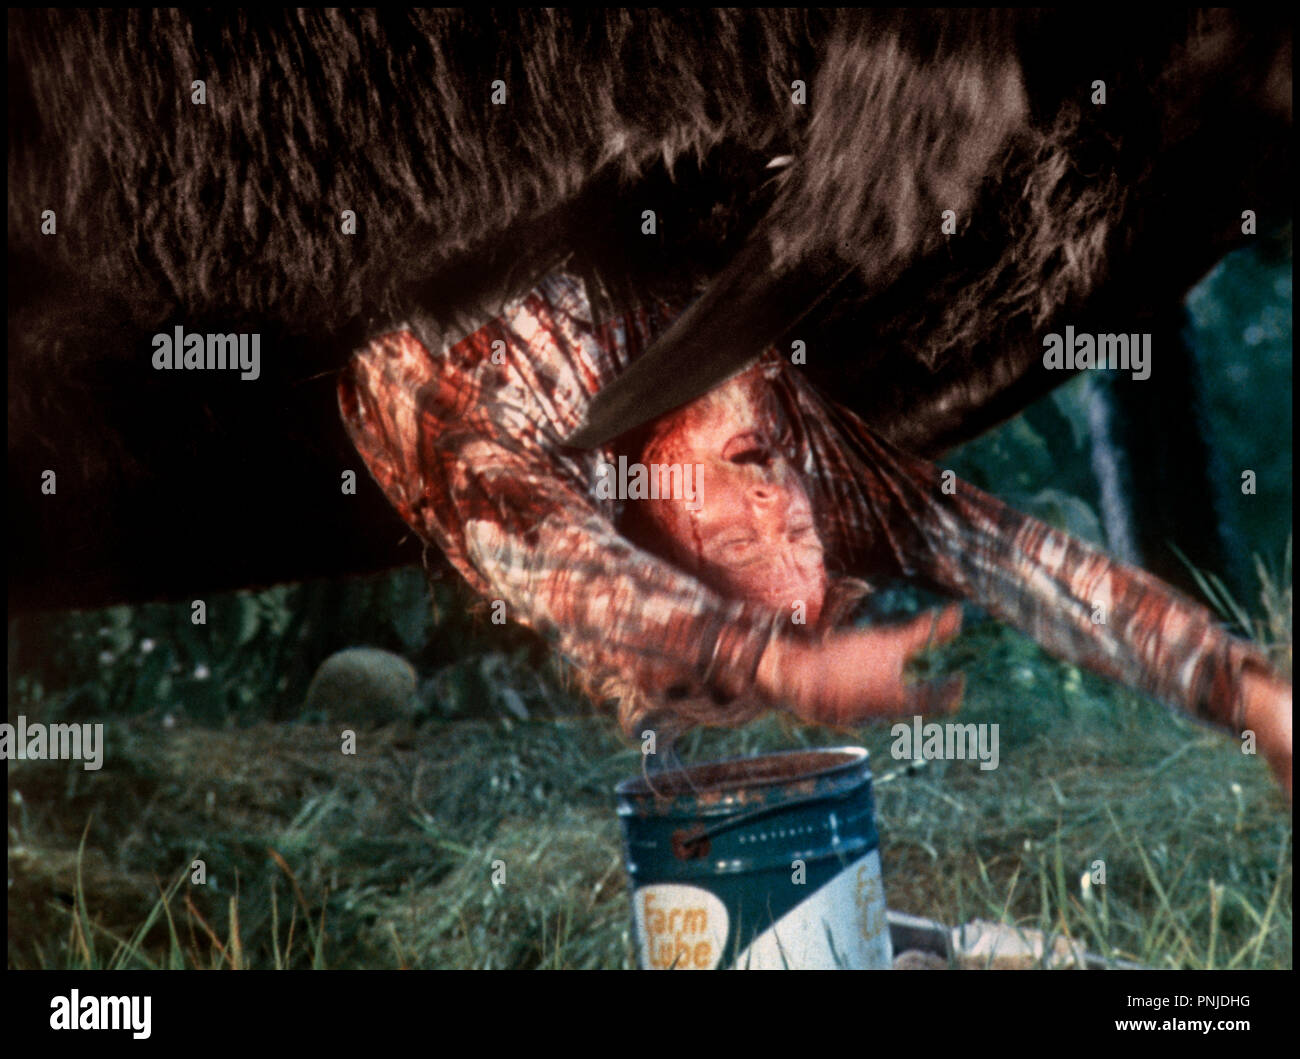 Spider Invasion Stock Photos   Spider Invasion Stock Images - Alamy a521702e30a5